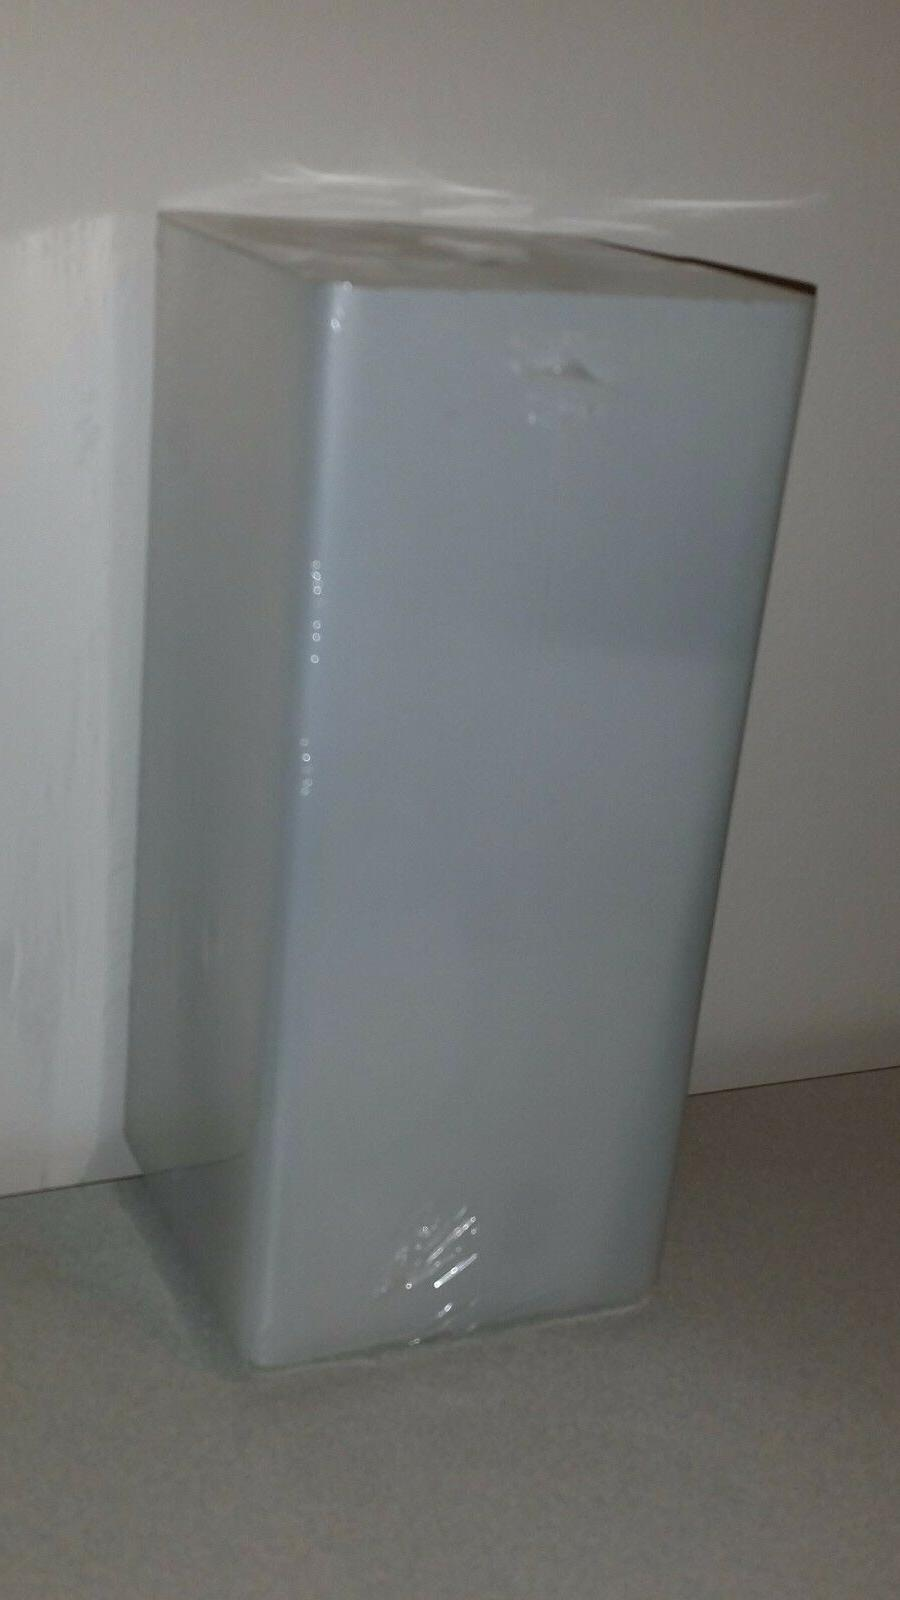 grono frosted glass table lamp brand new